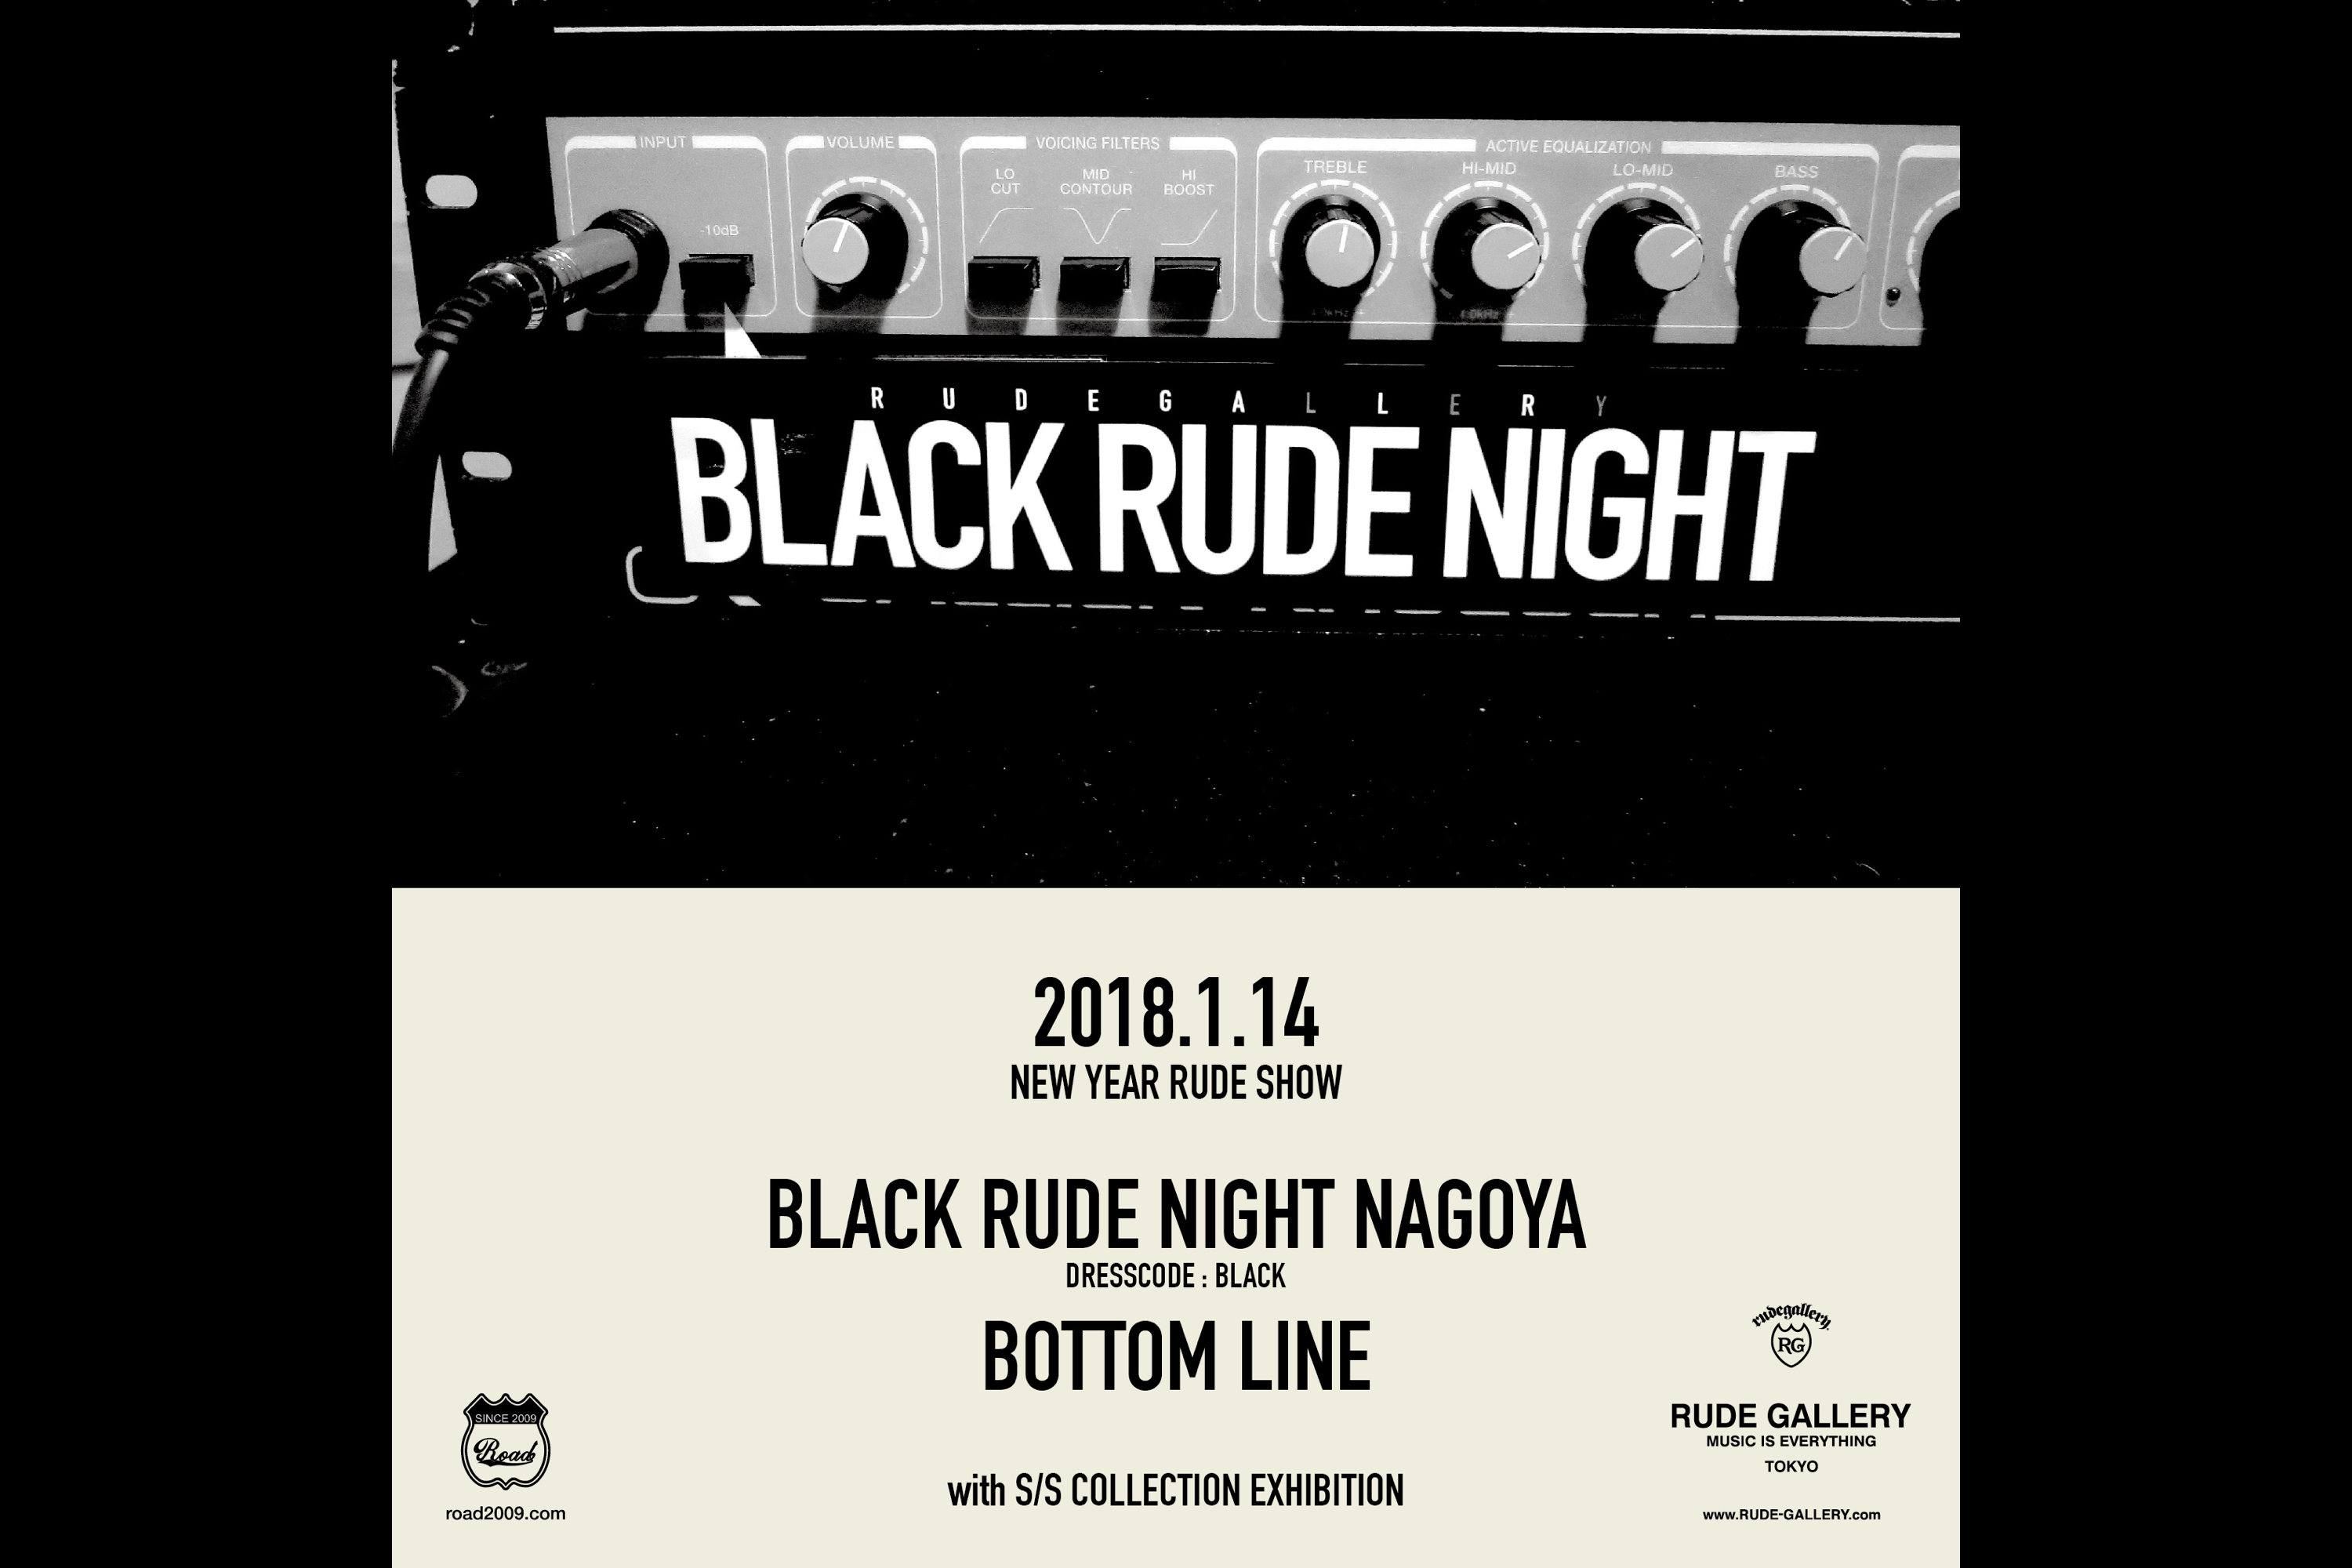 BLACK RUDE NIGHT